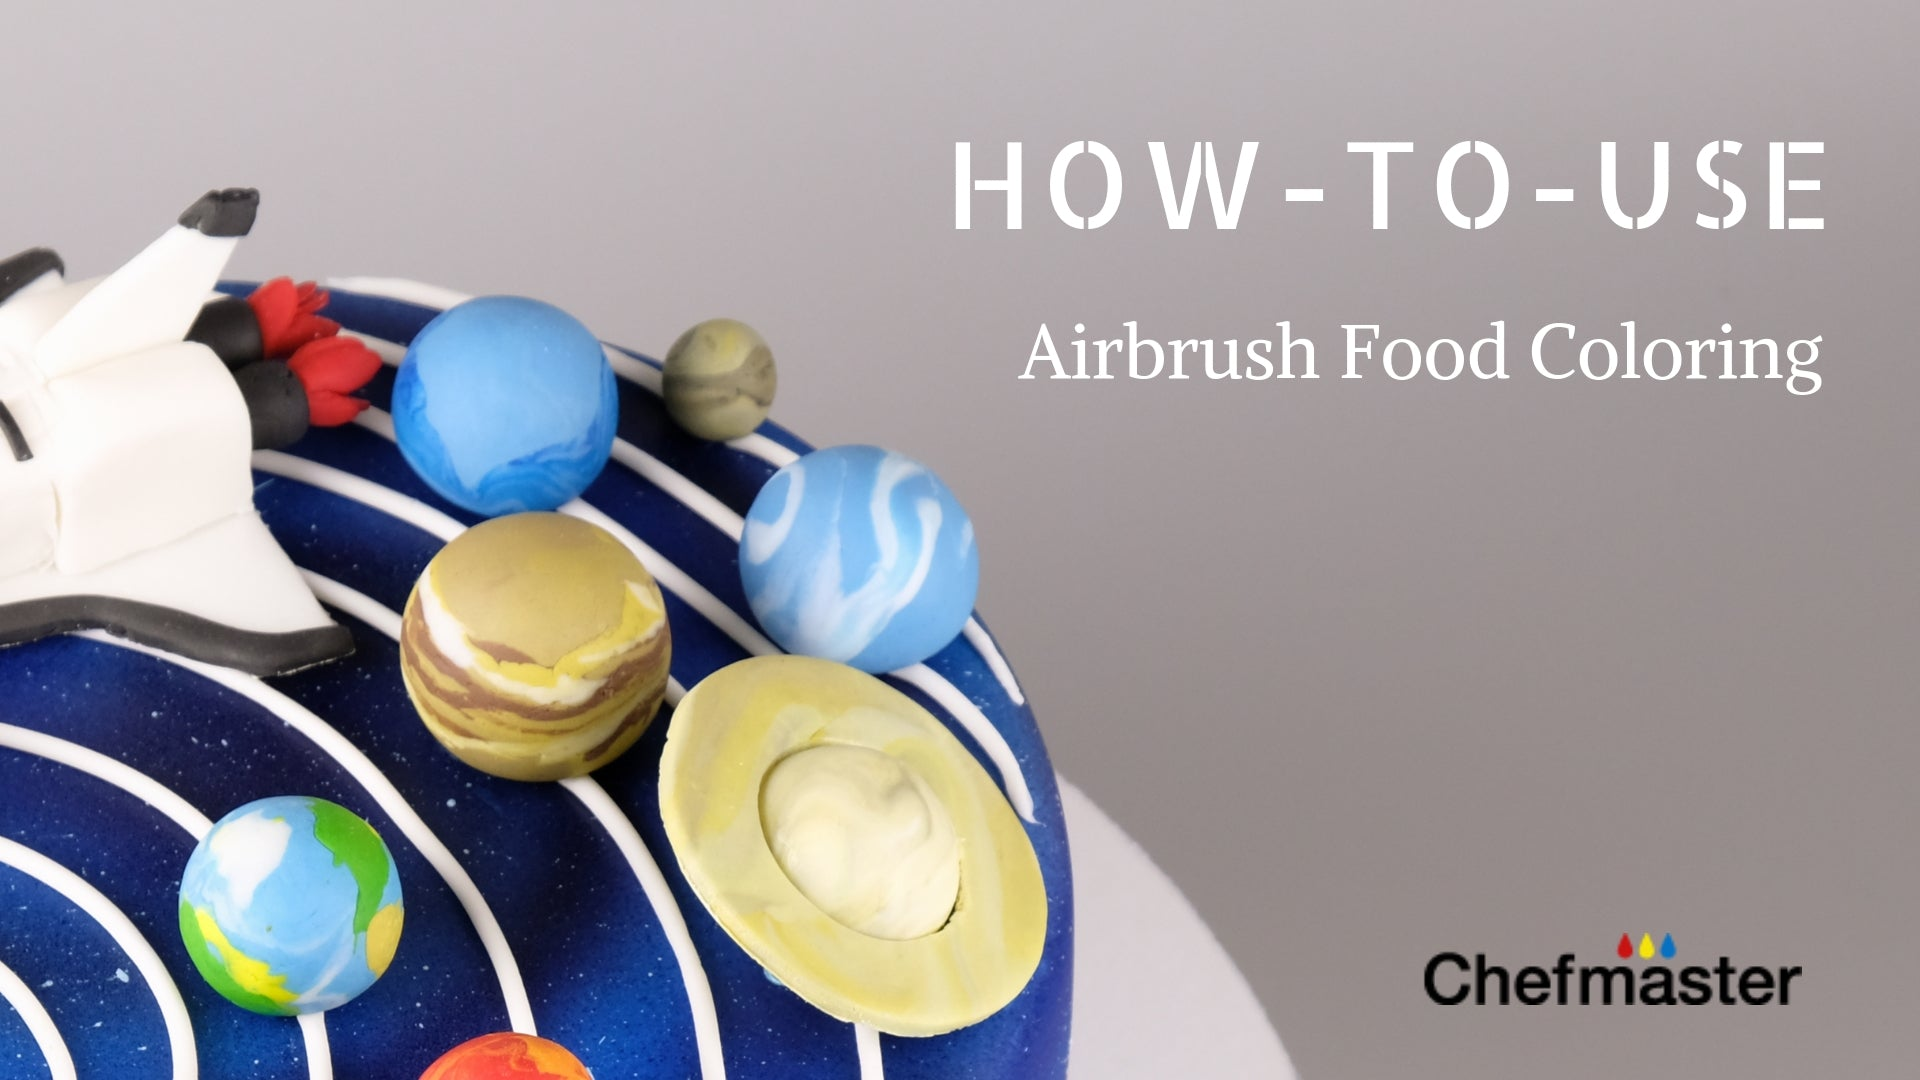 How to use Chefmaster® Airbrush Food Coloring – Chefmaster.com